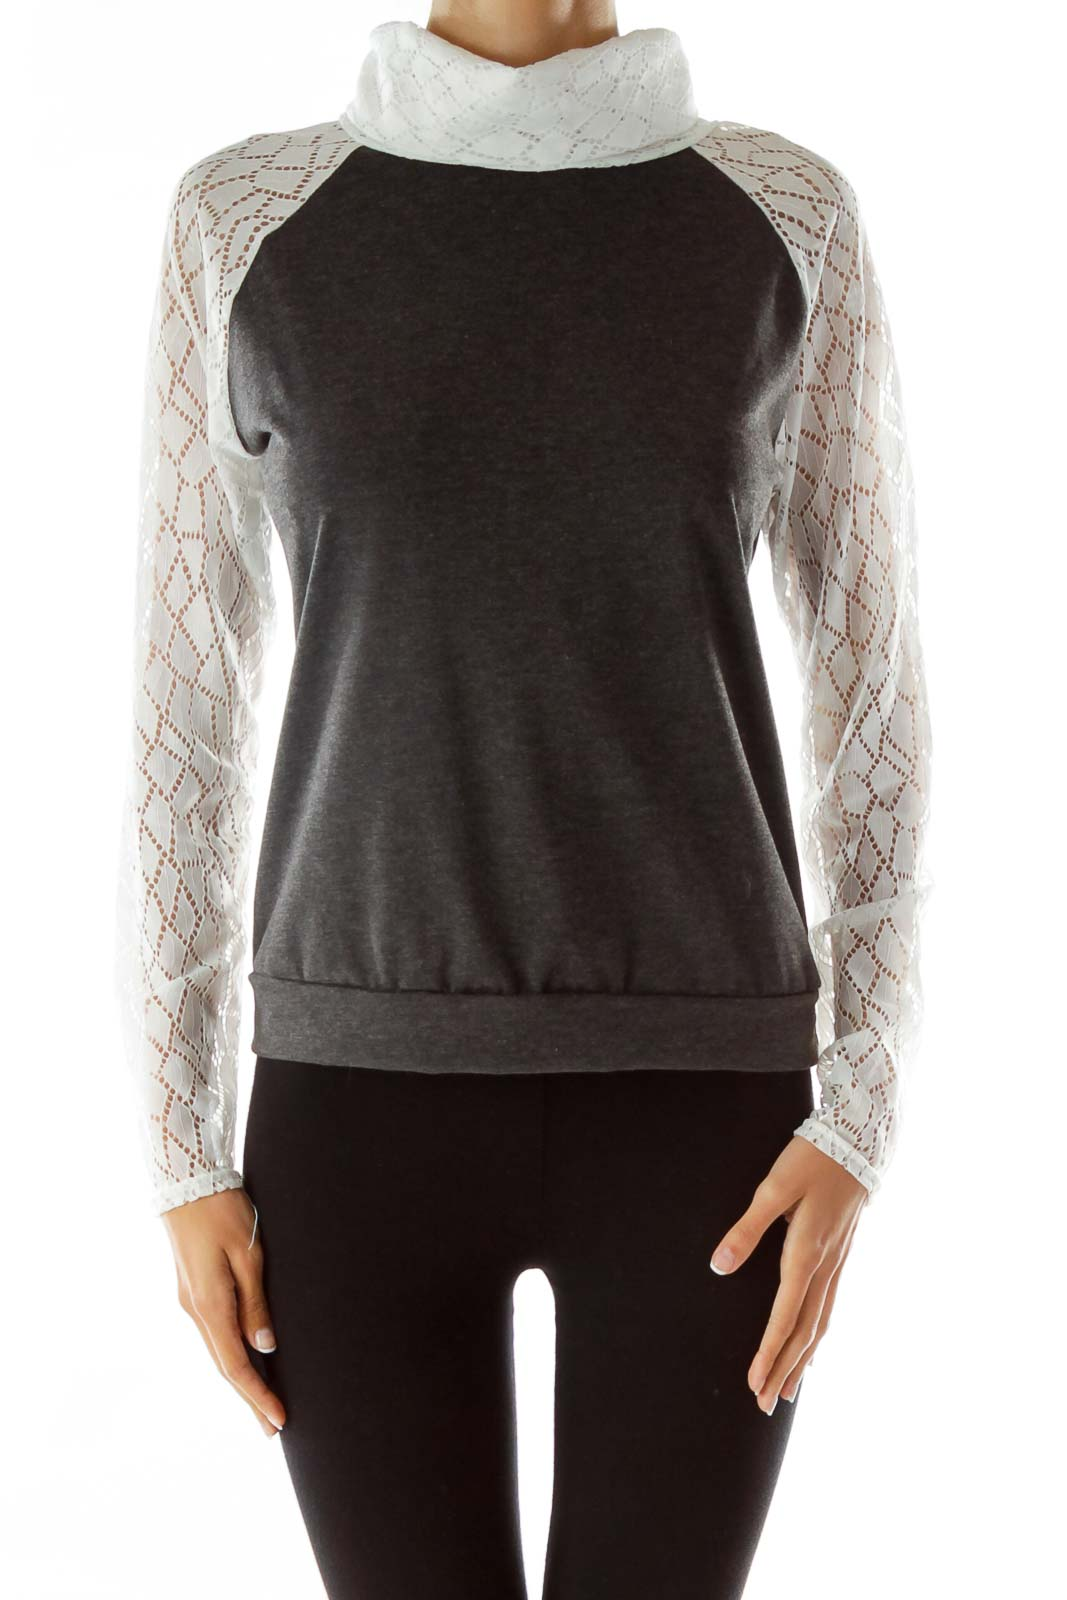 Gray Top with White Lacey Turtle-Neck